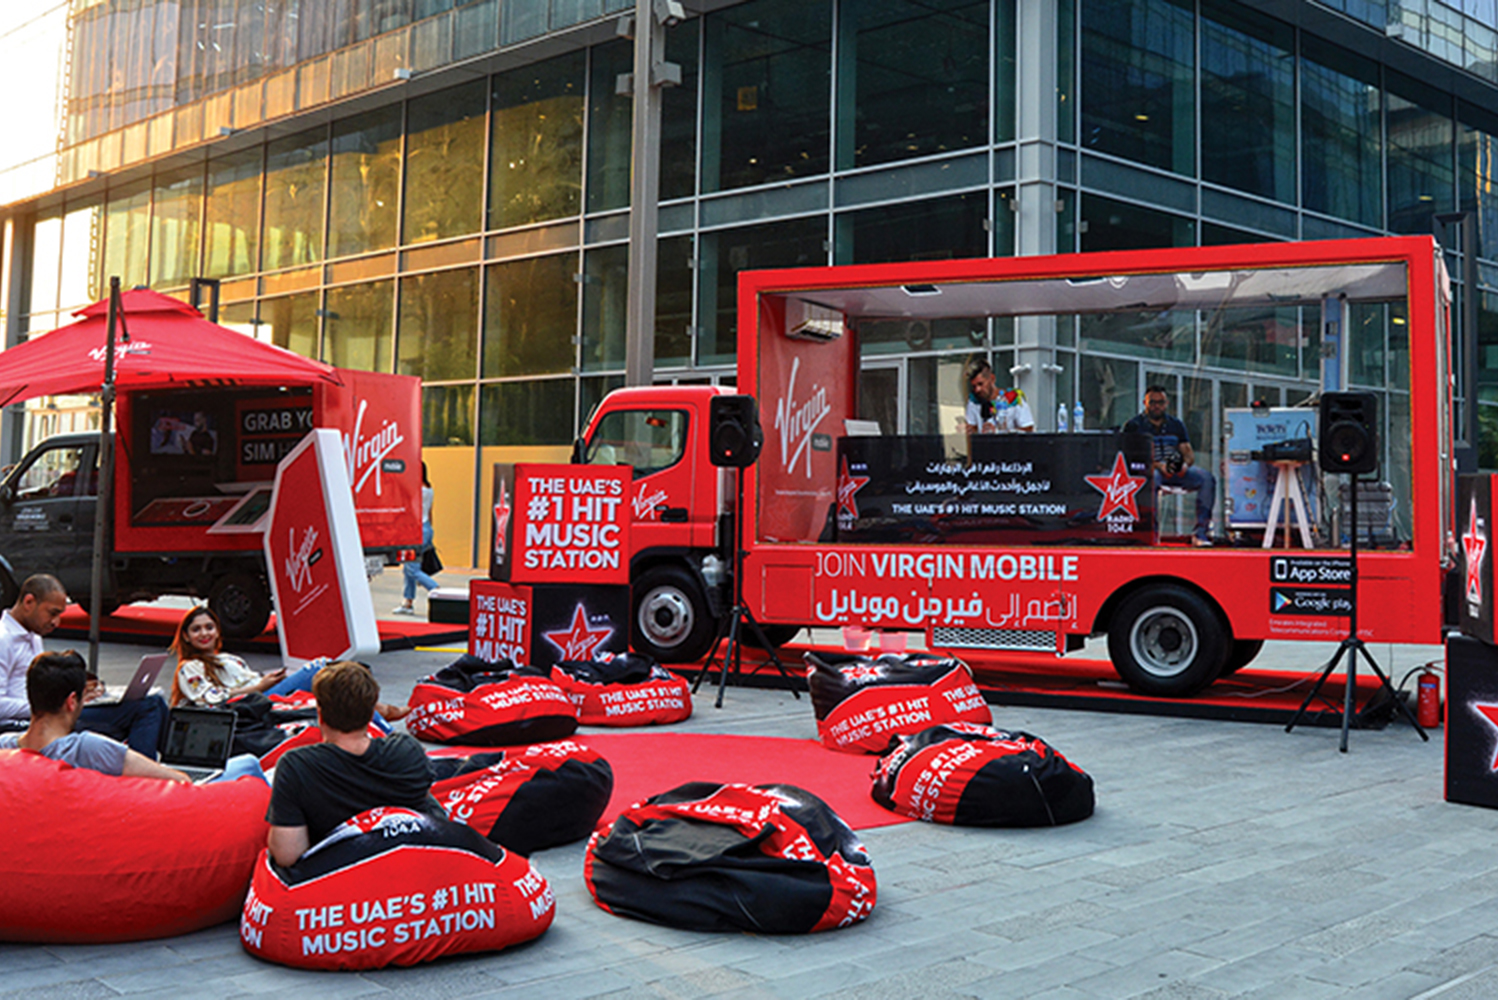 Promo Truck Advertising Virgin Mobile Dubai, UAE